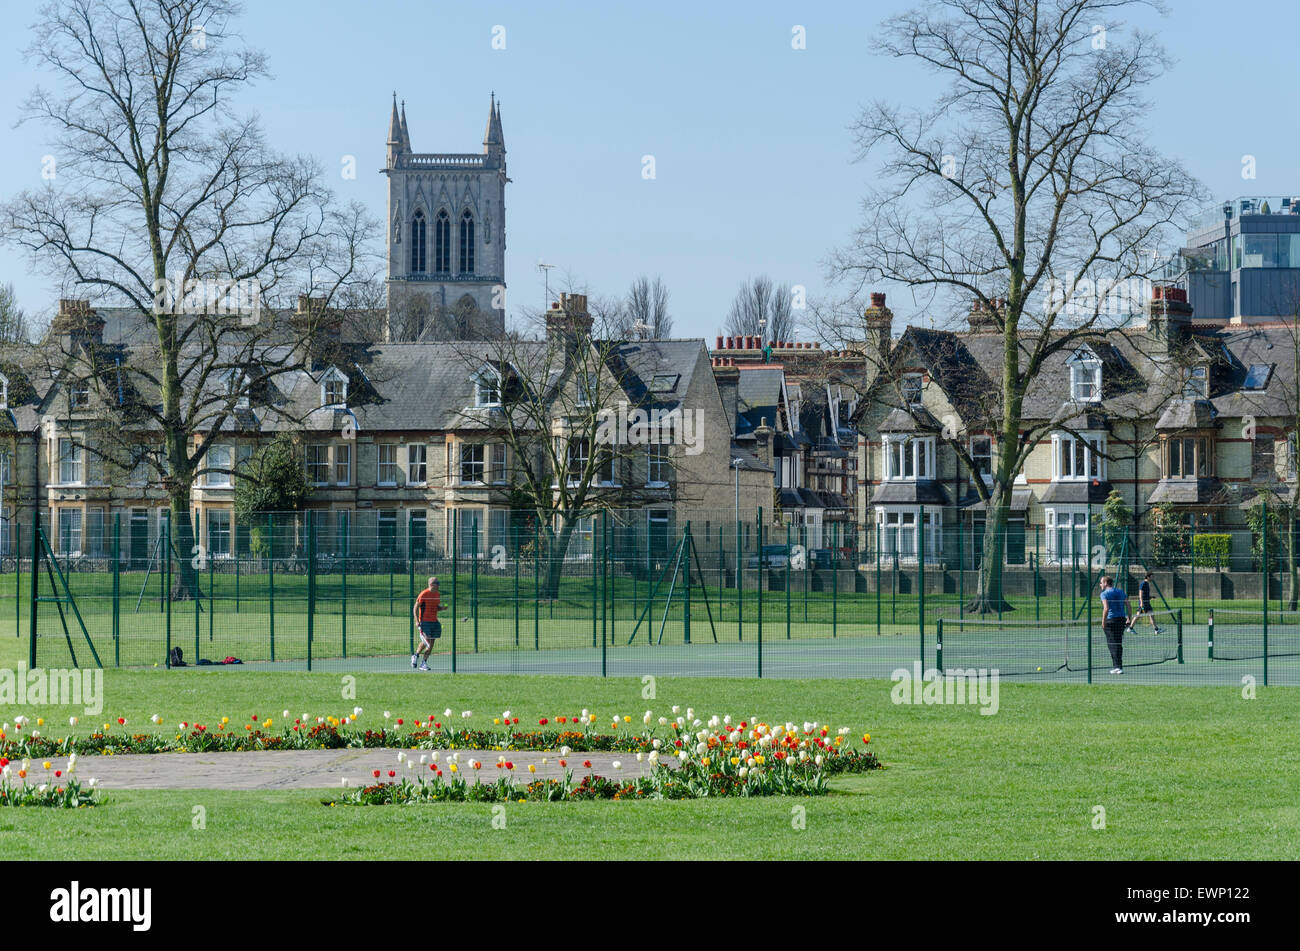 People playing tennis at the public tennis courts on Jesus Green, Cambridge, UK - Stock Image